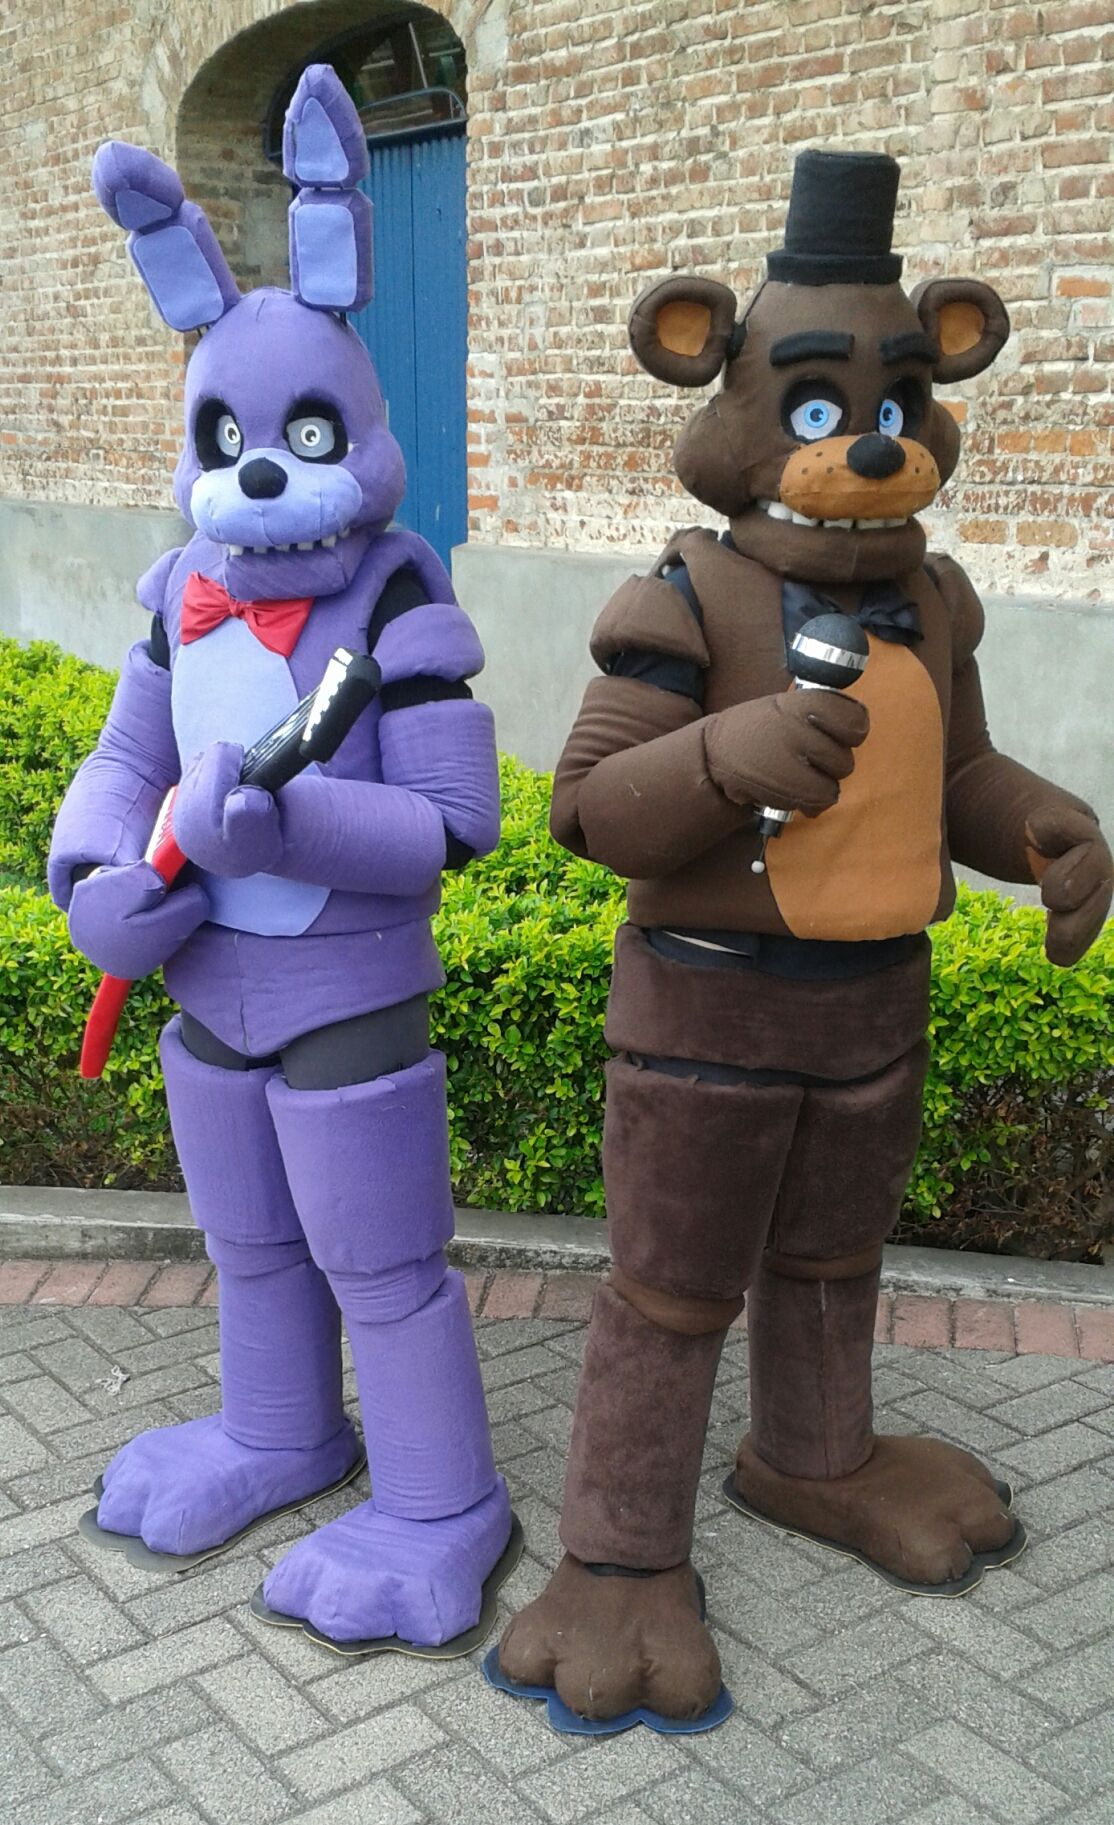 F fnaf bonnie costume for sale - Epic Five Nights At Freddy S Freddy And Bonnie Costumes Perfect For My Plan